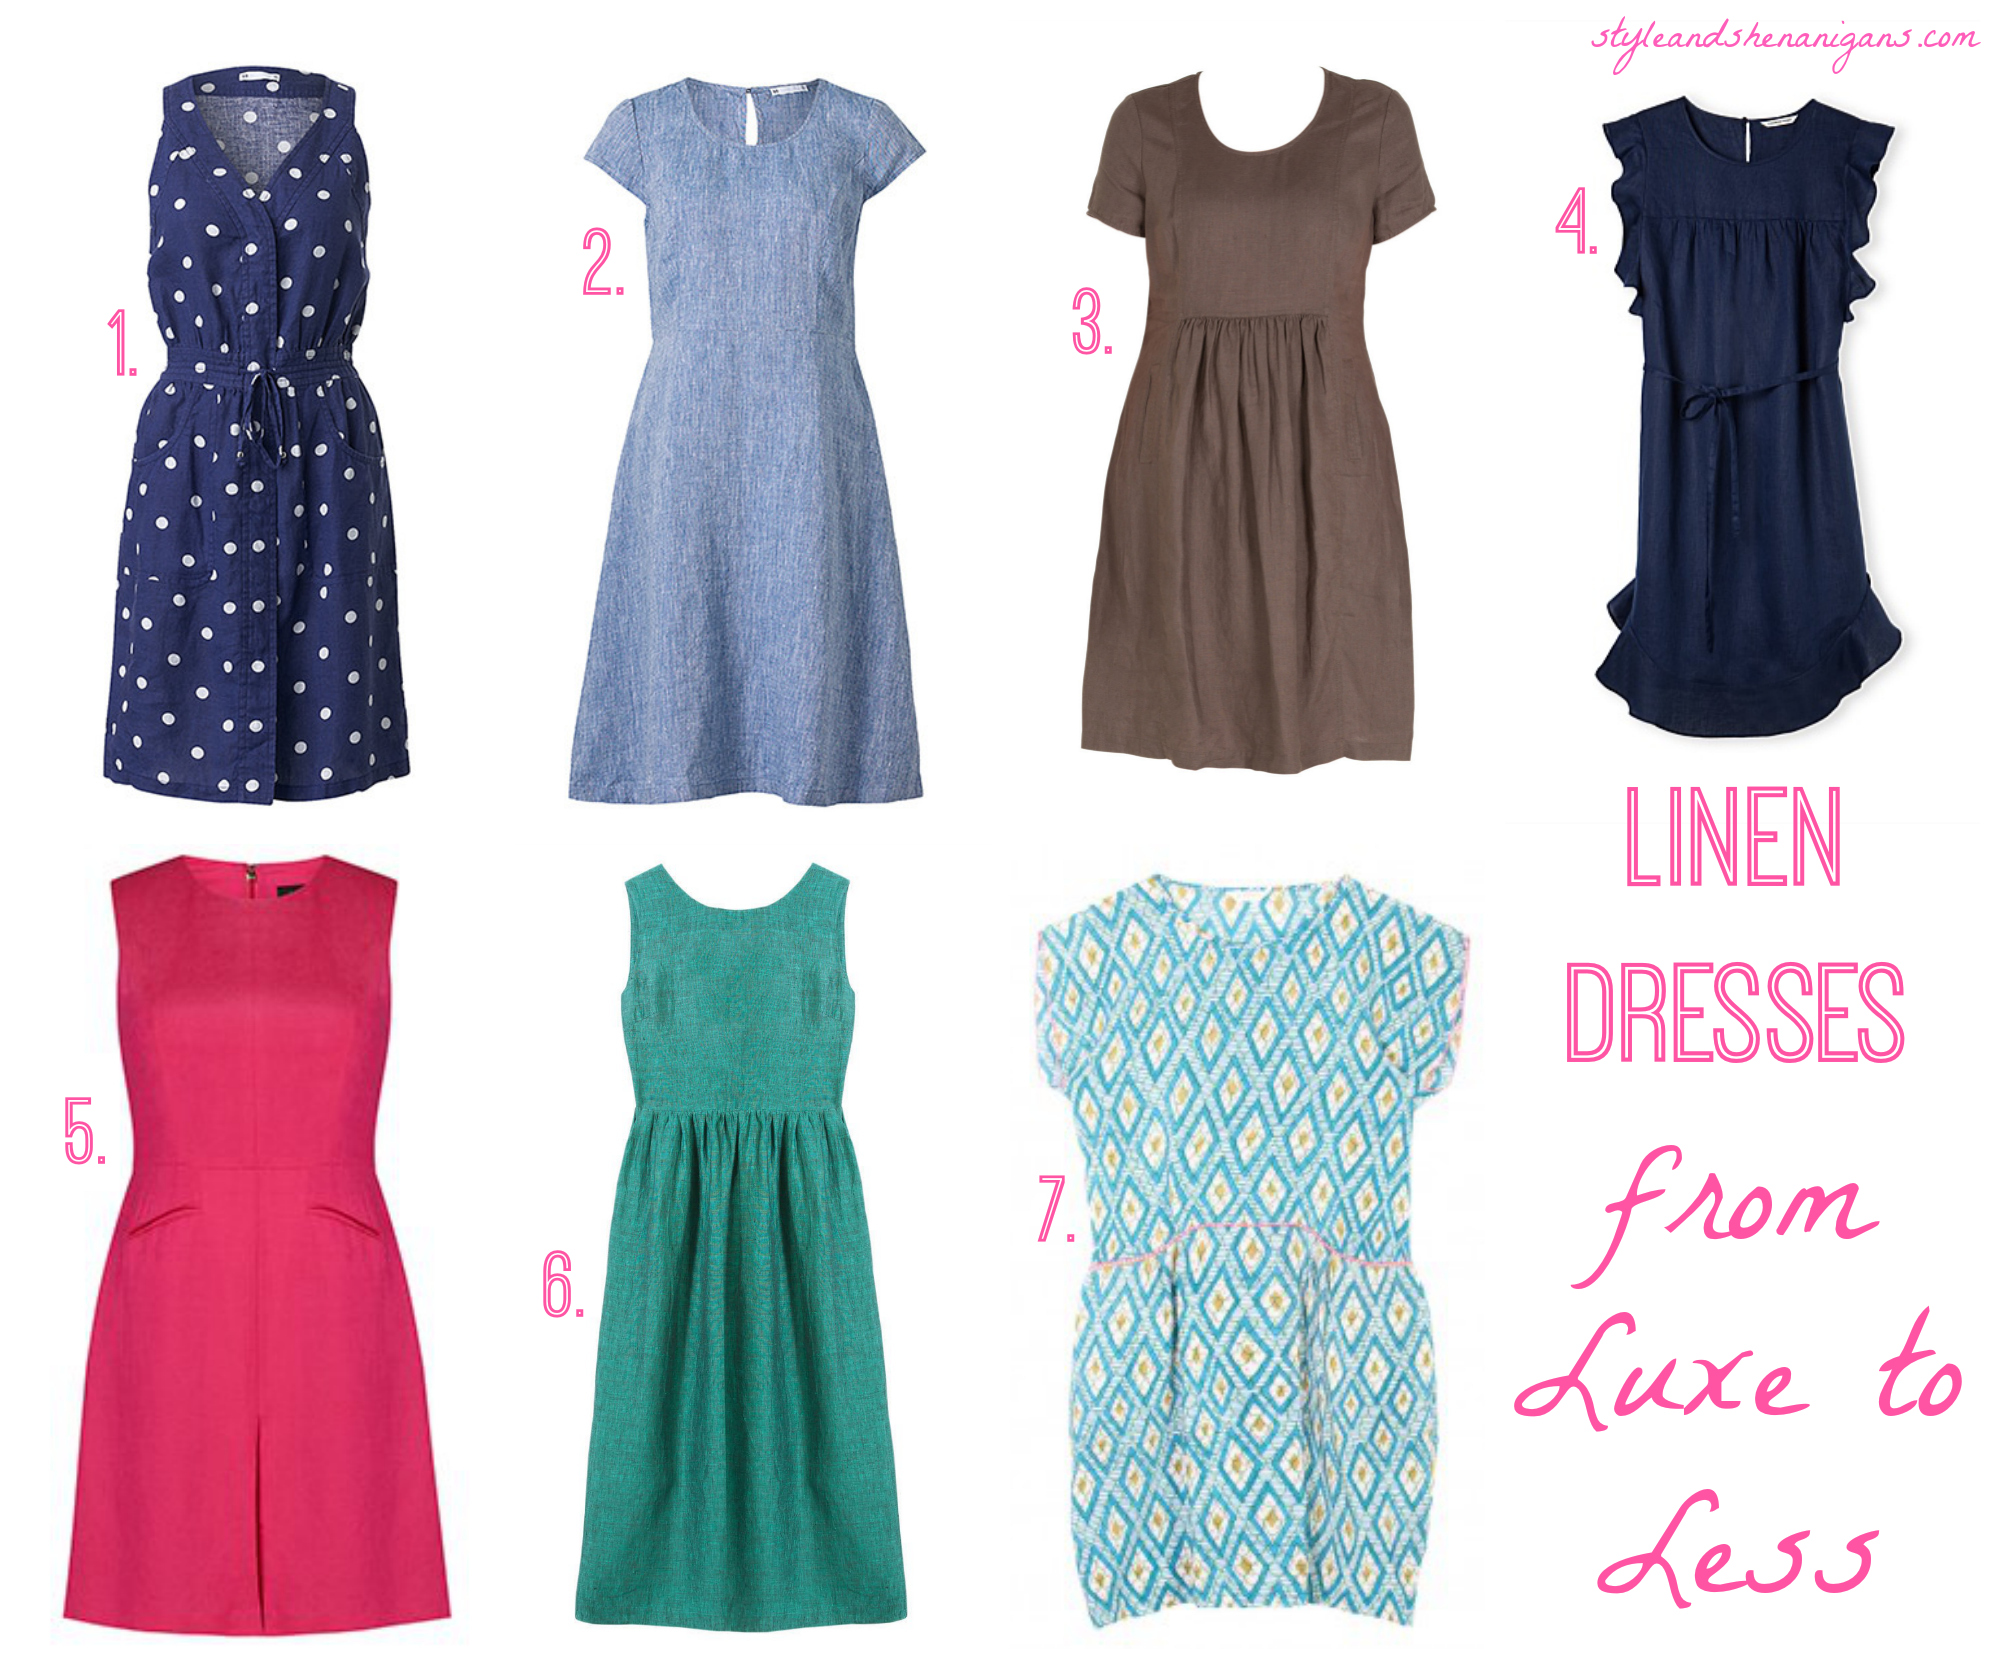 bac1e5495ec Linen Dresses  From Luxe to Less - Style   Shenanigans